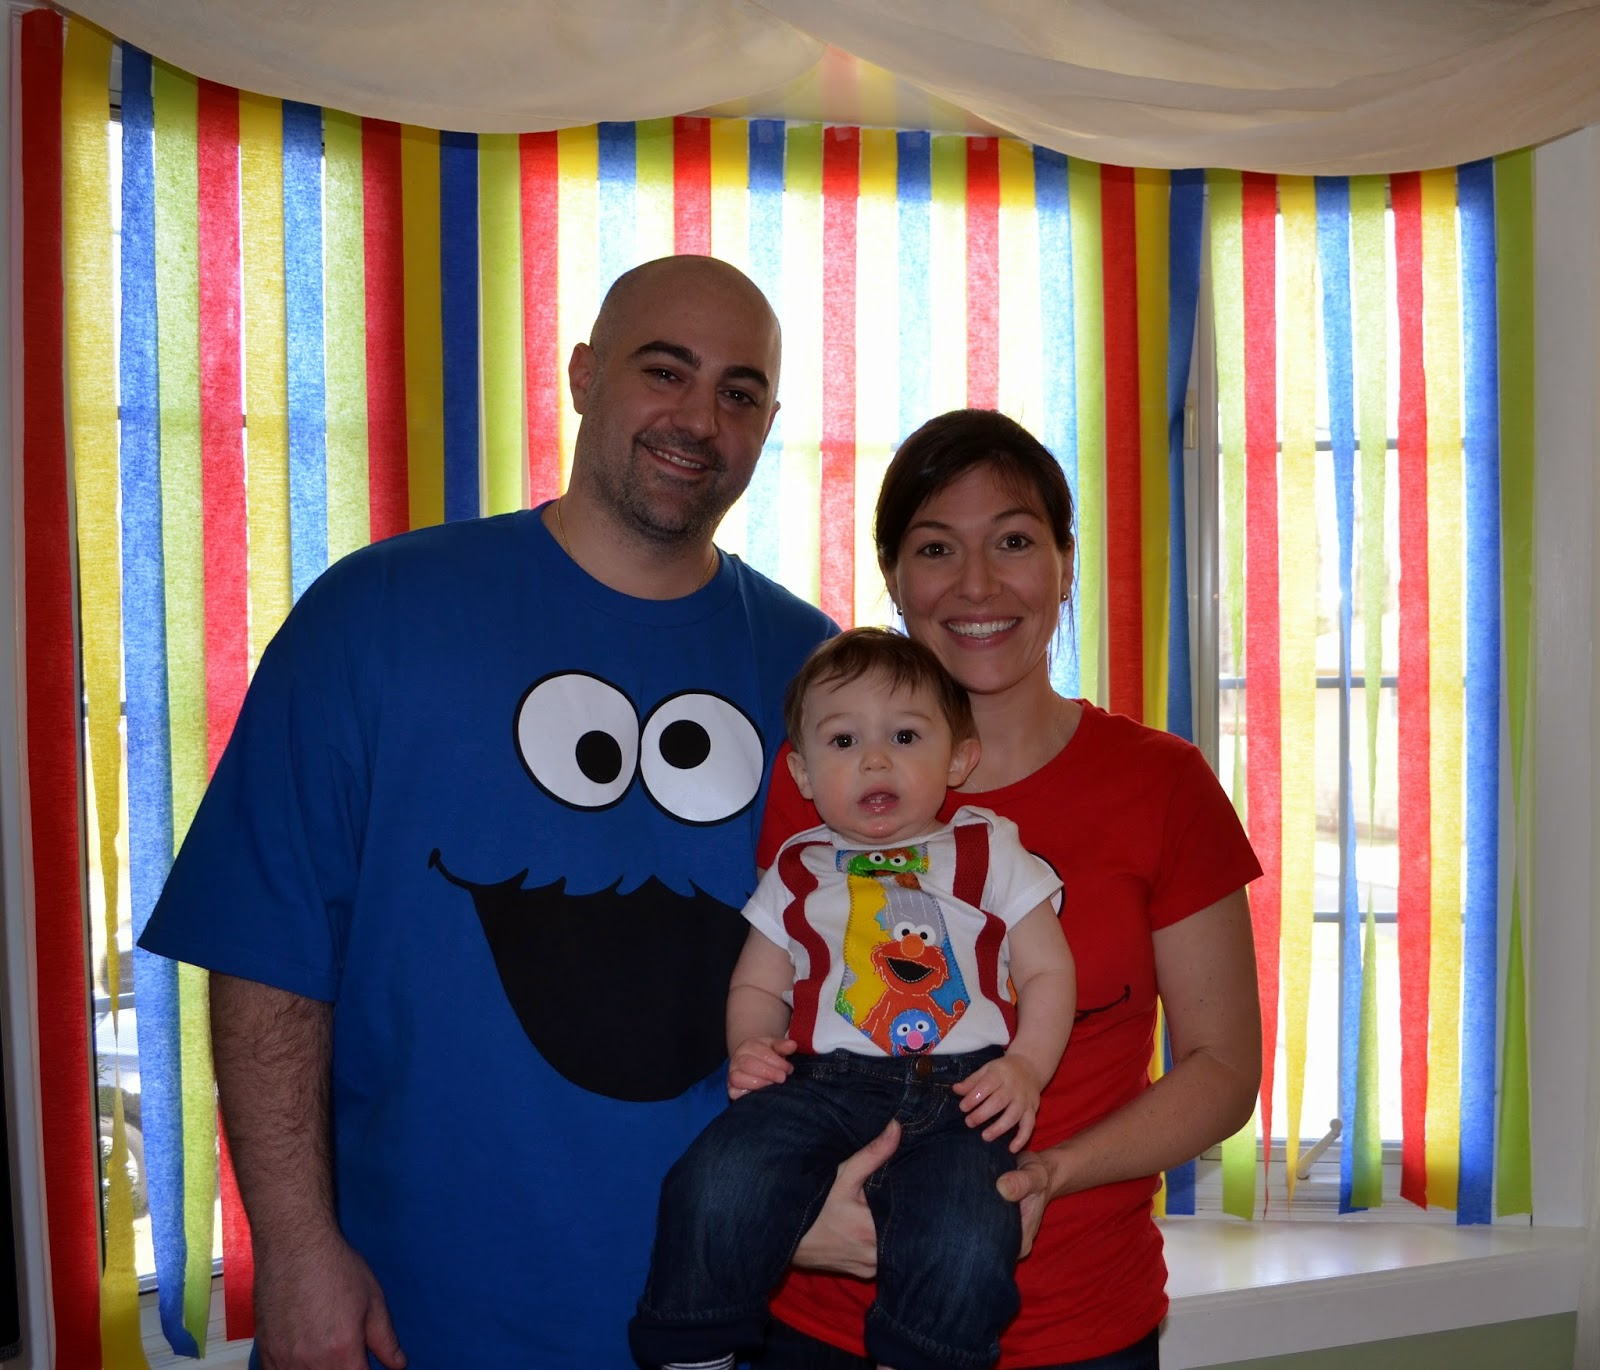 Elmo 1st birthday party ideas birthday party sesamestreet - Sesame Street Birthday Party Ideas